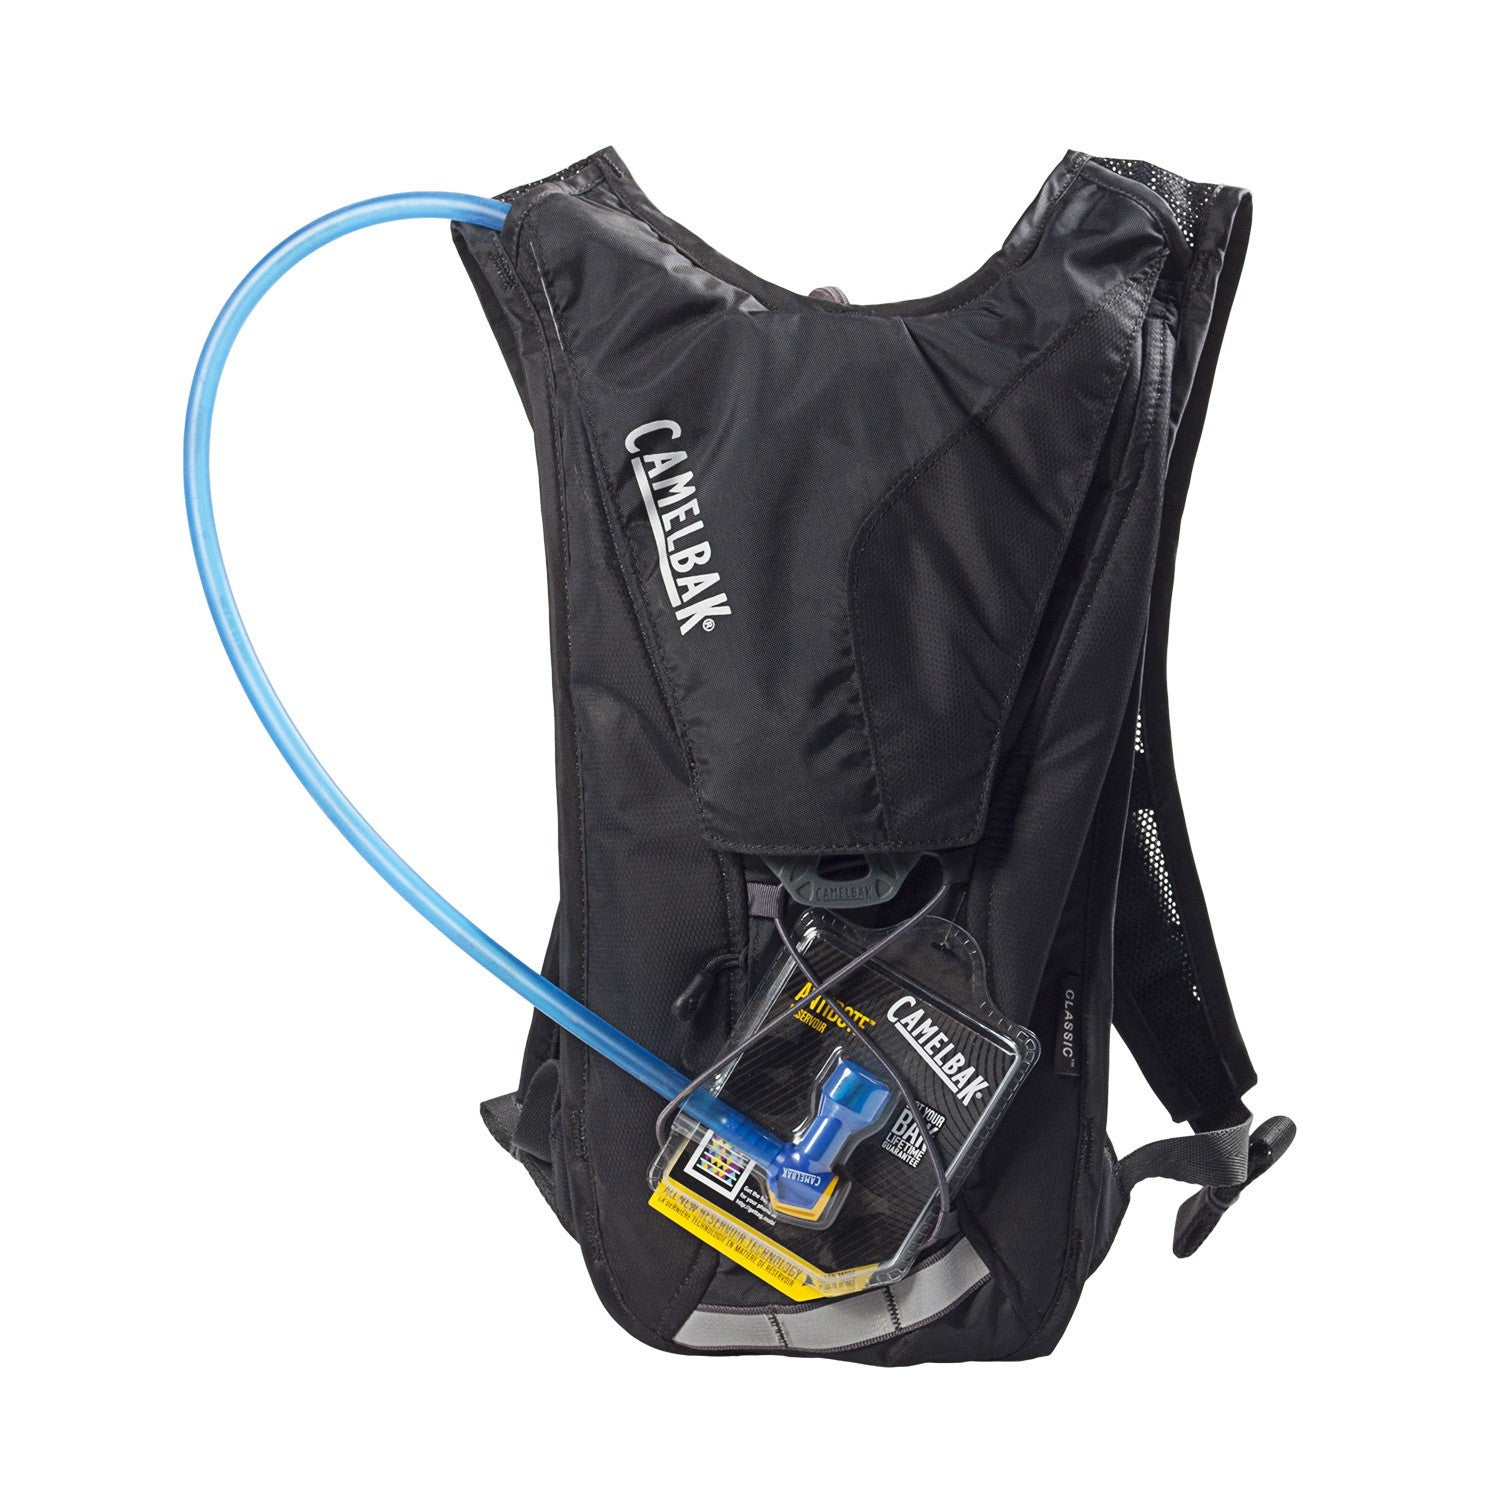 Camelbak Classic Hydration Pack - Racer Sportif